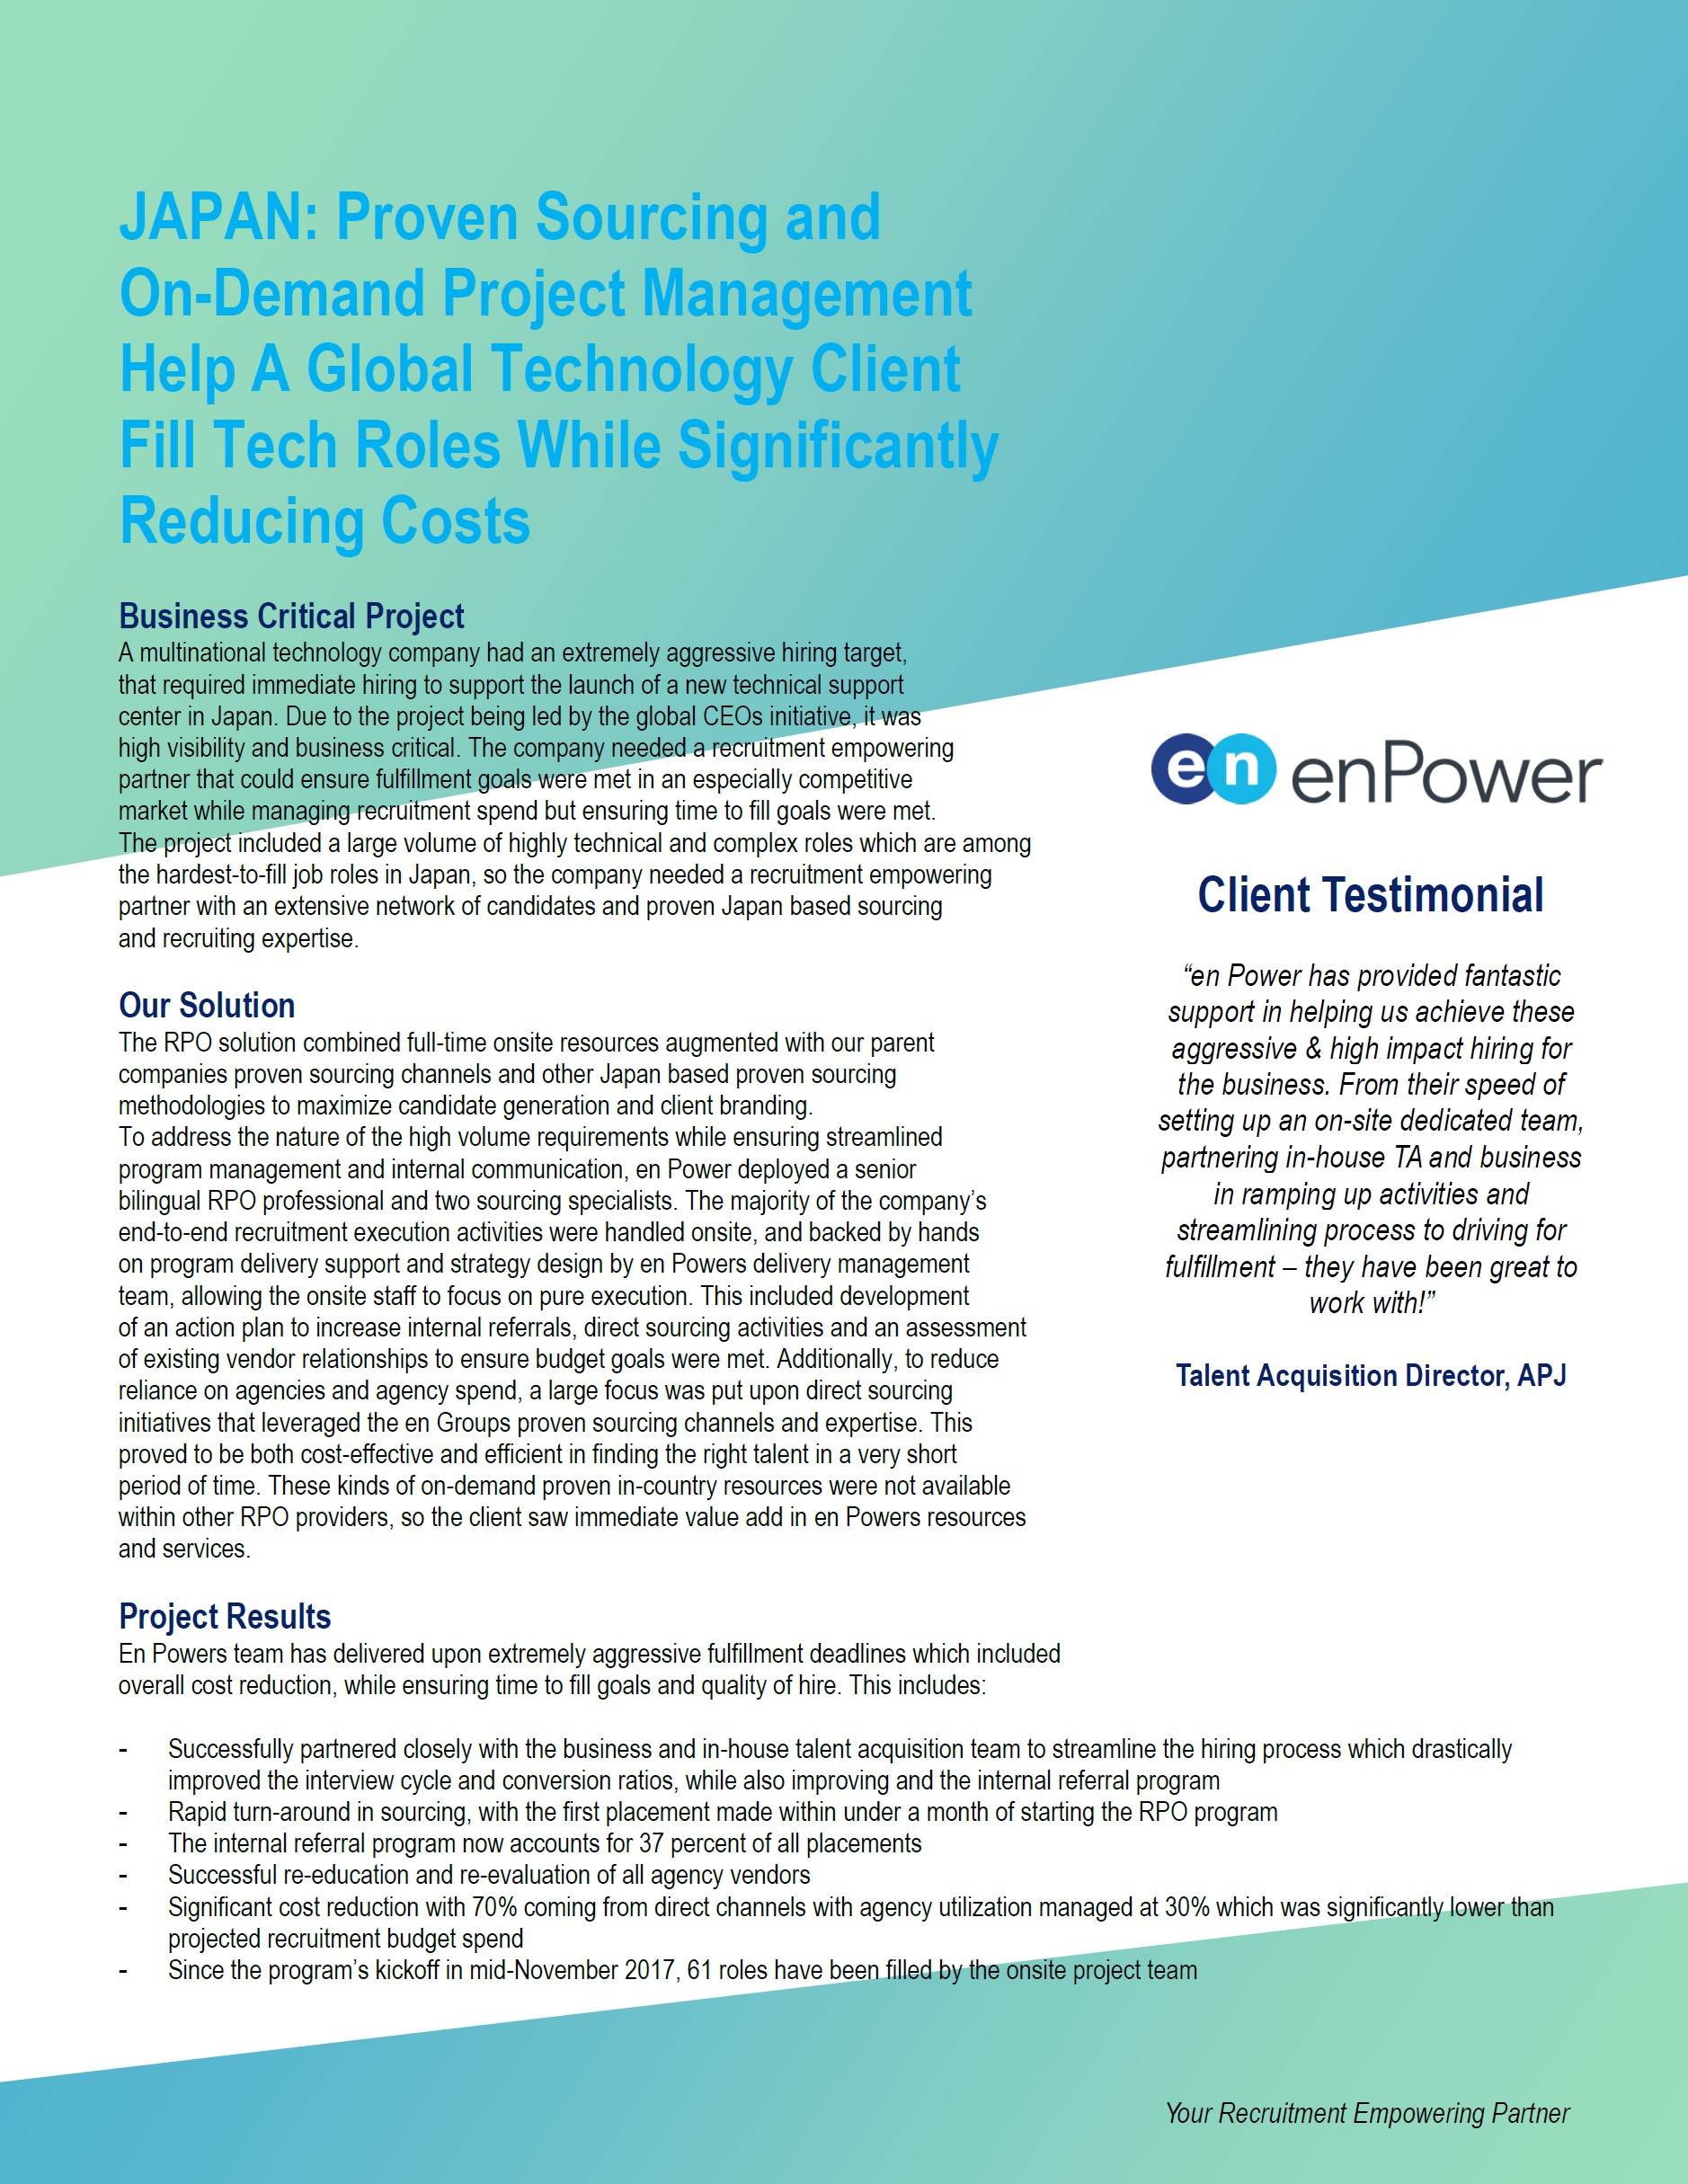 enPower Case Study